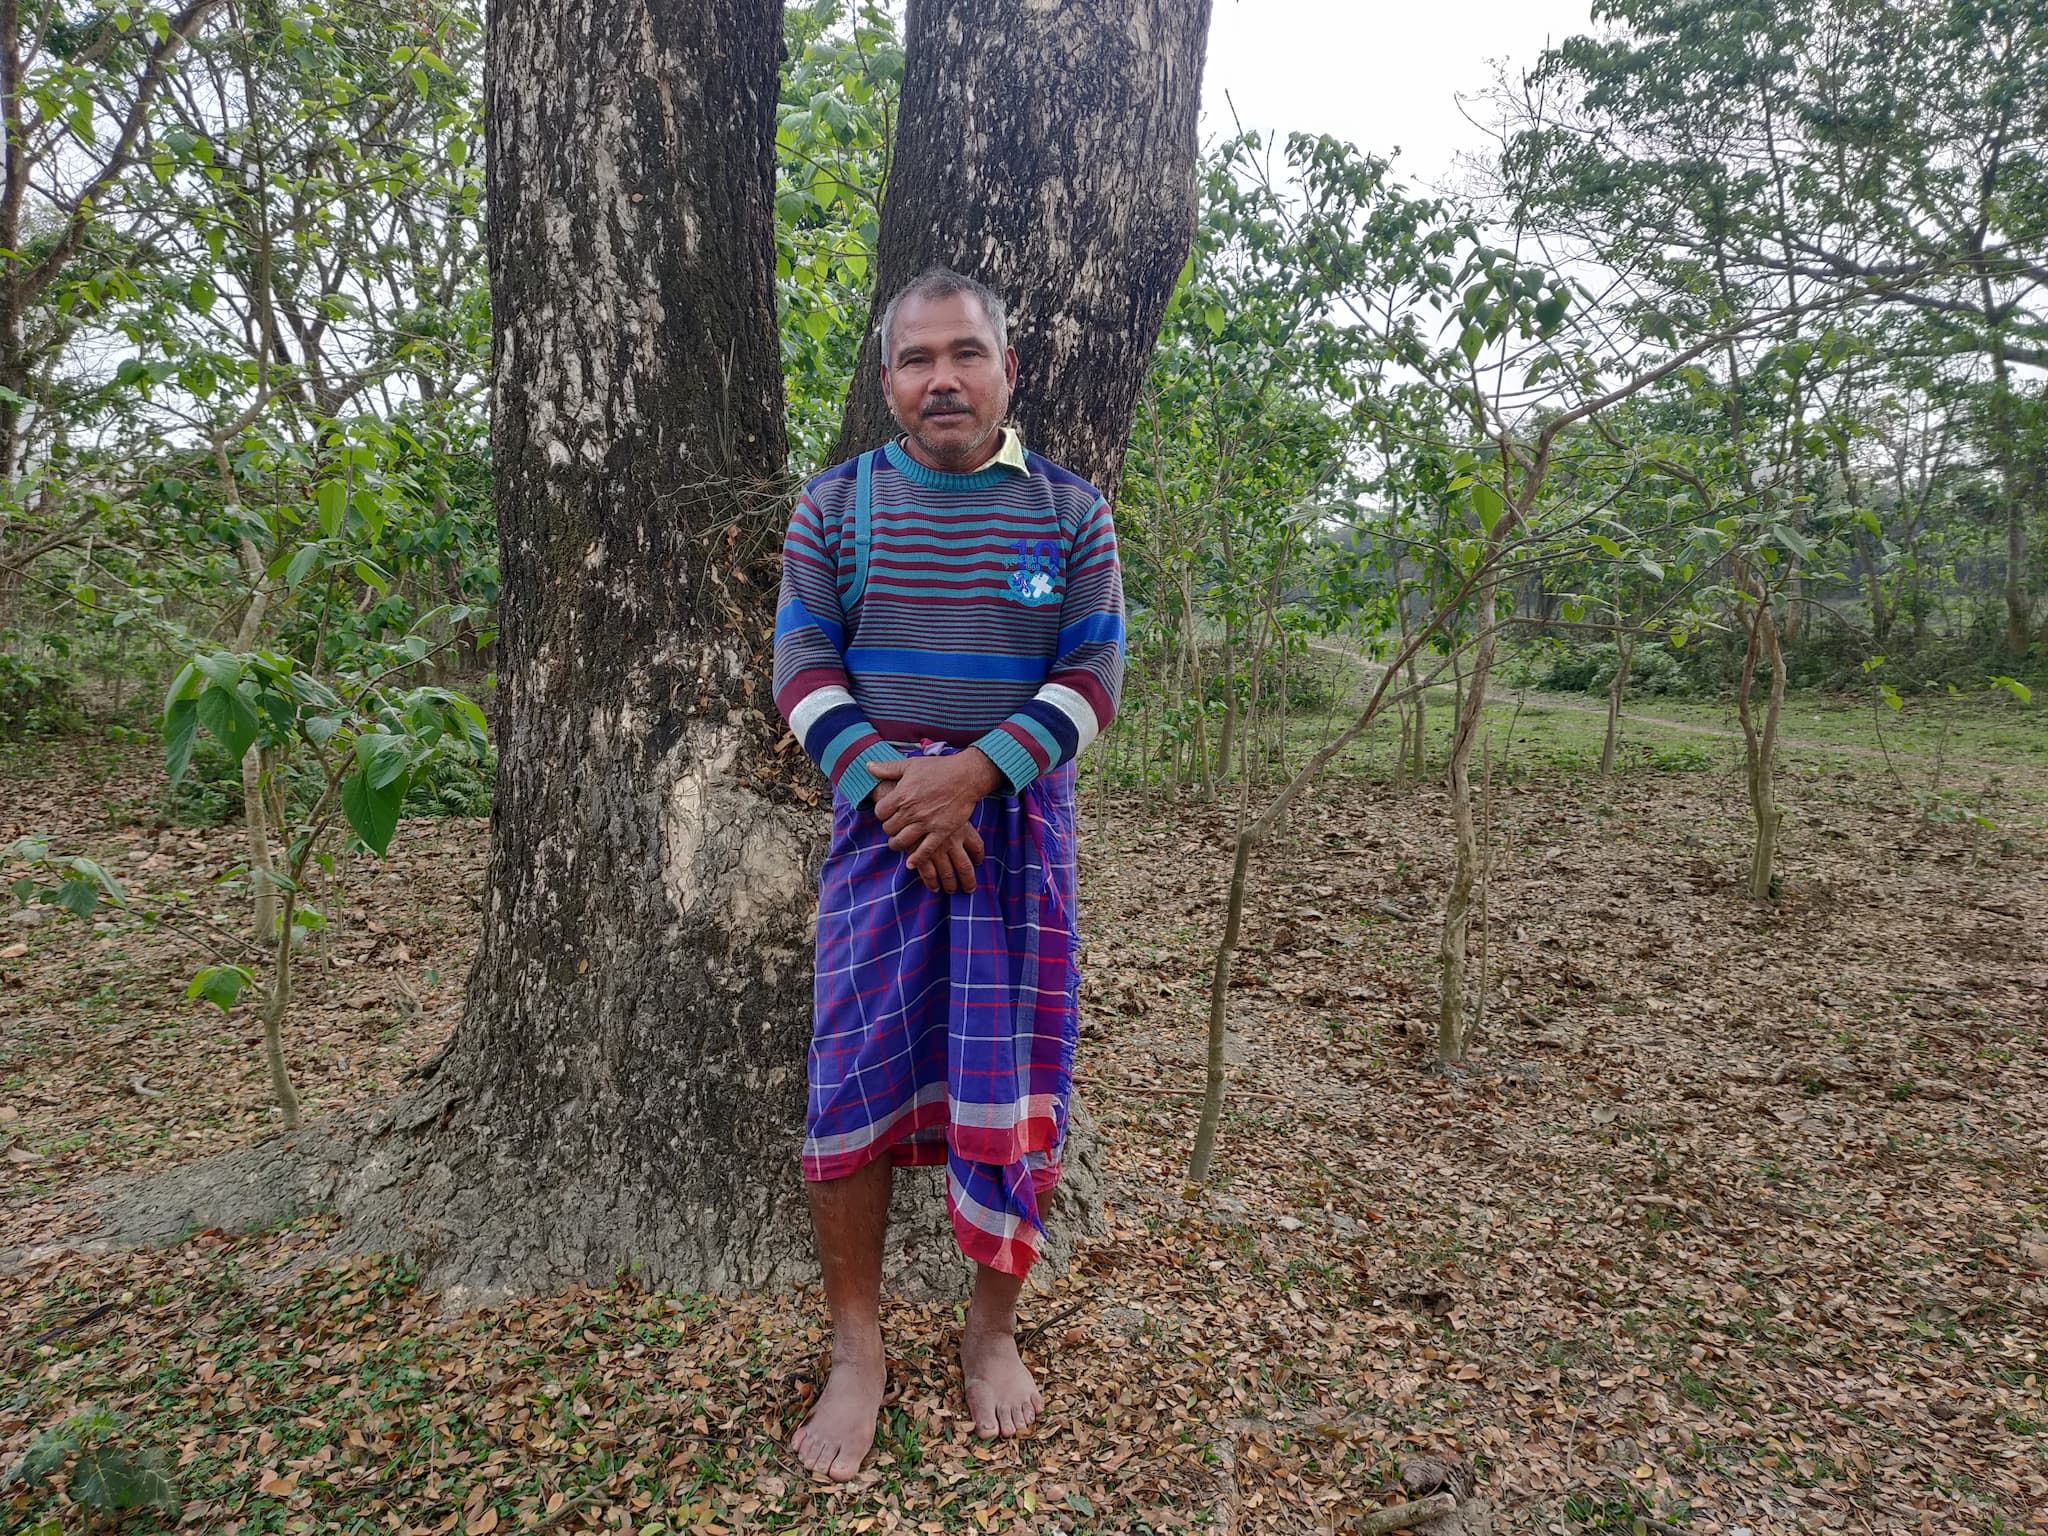 Jadav Payeng, India's 'Forest Man', is at it again